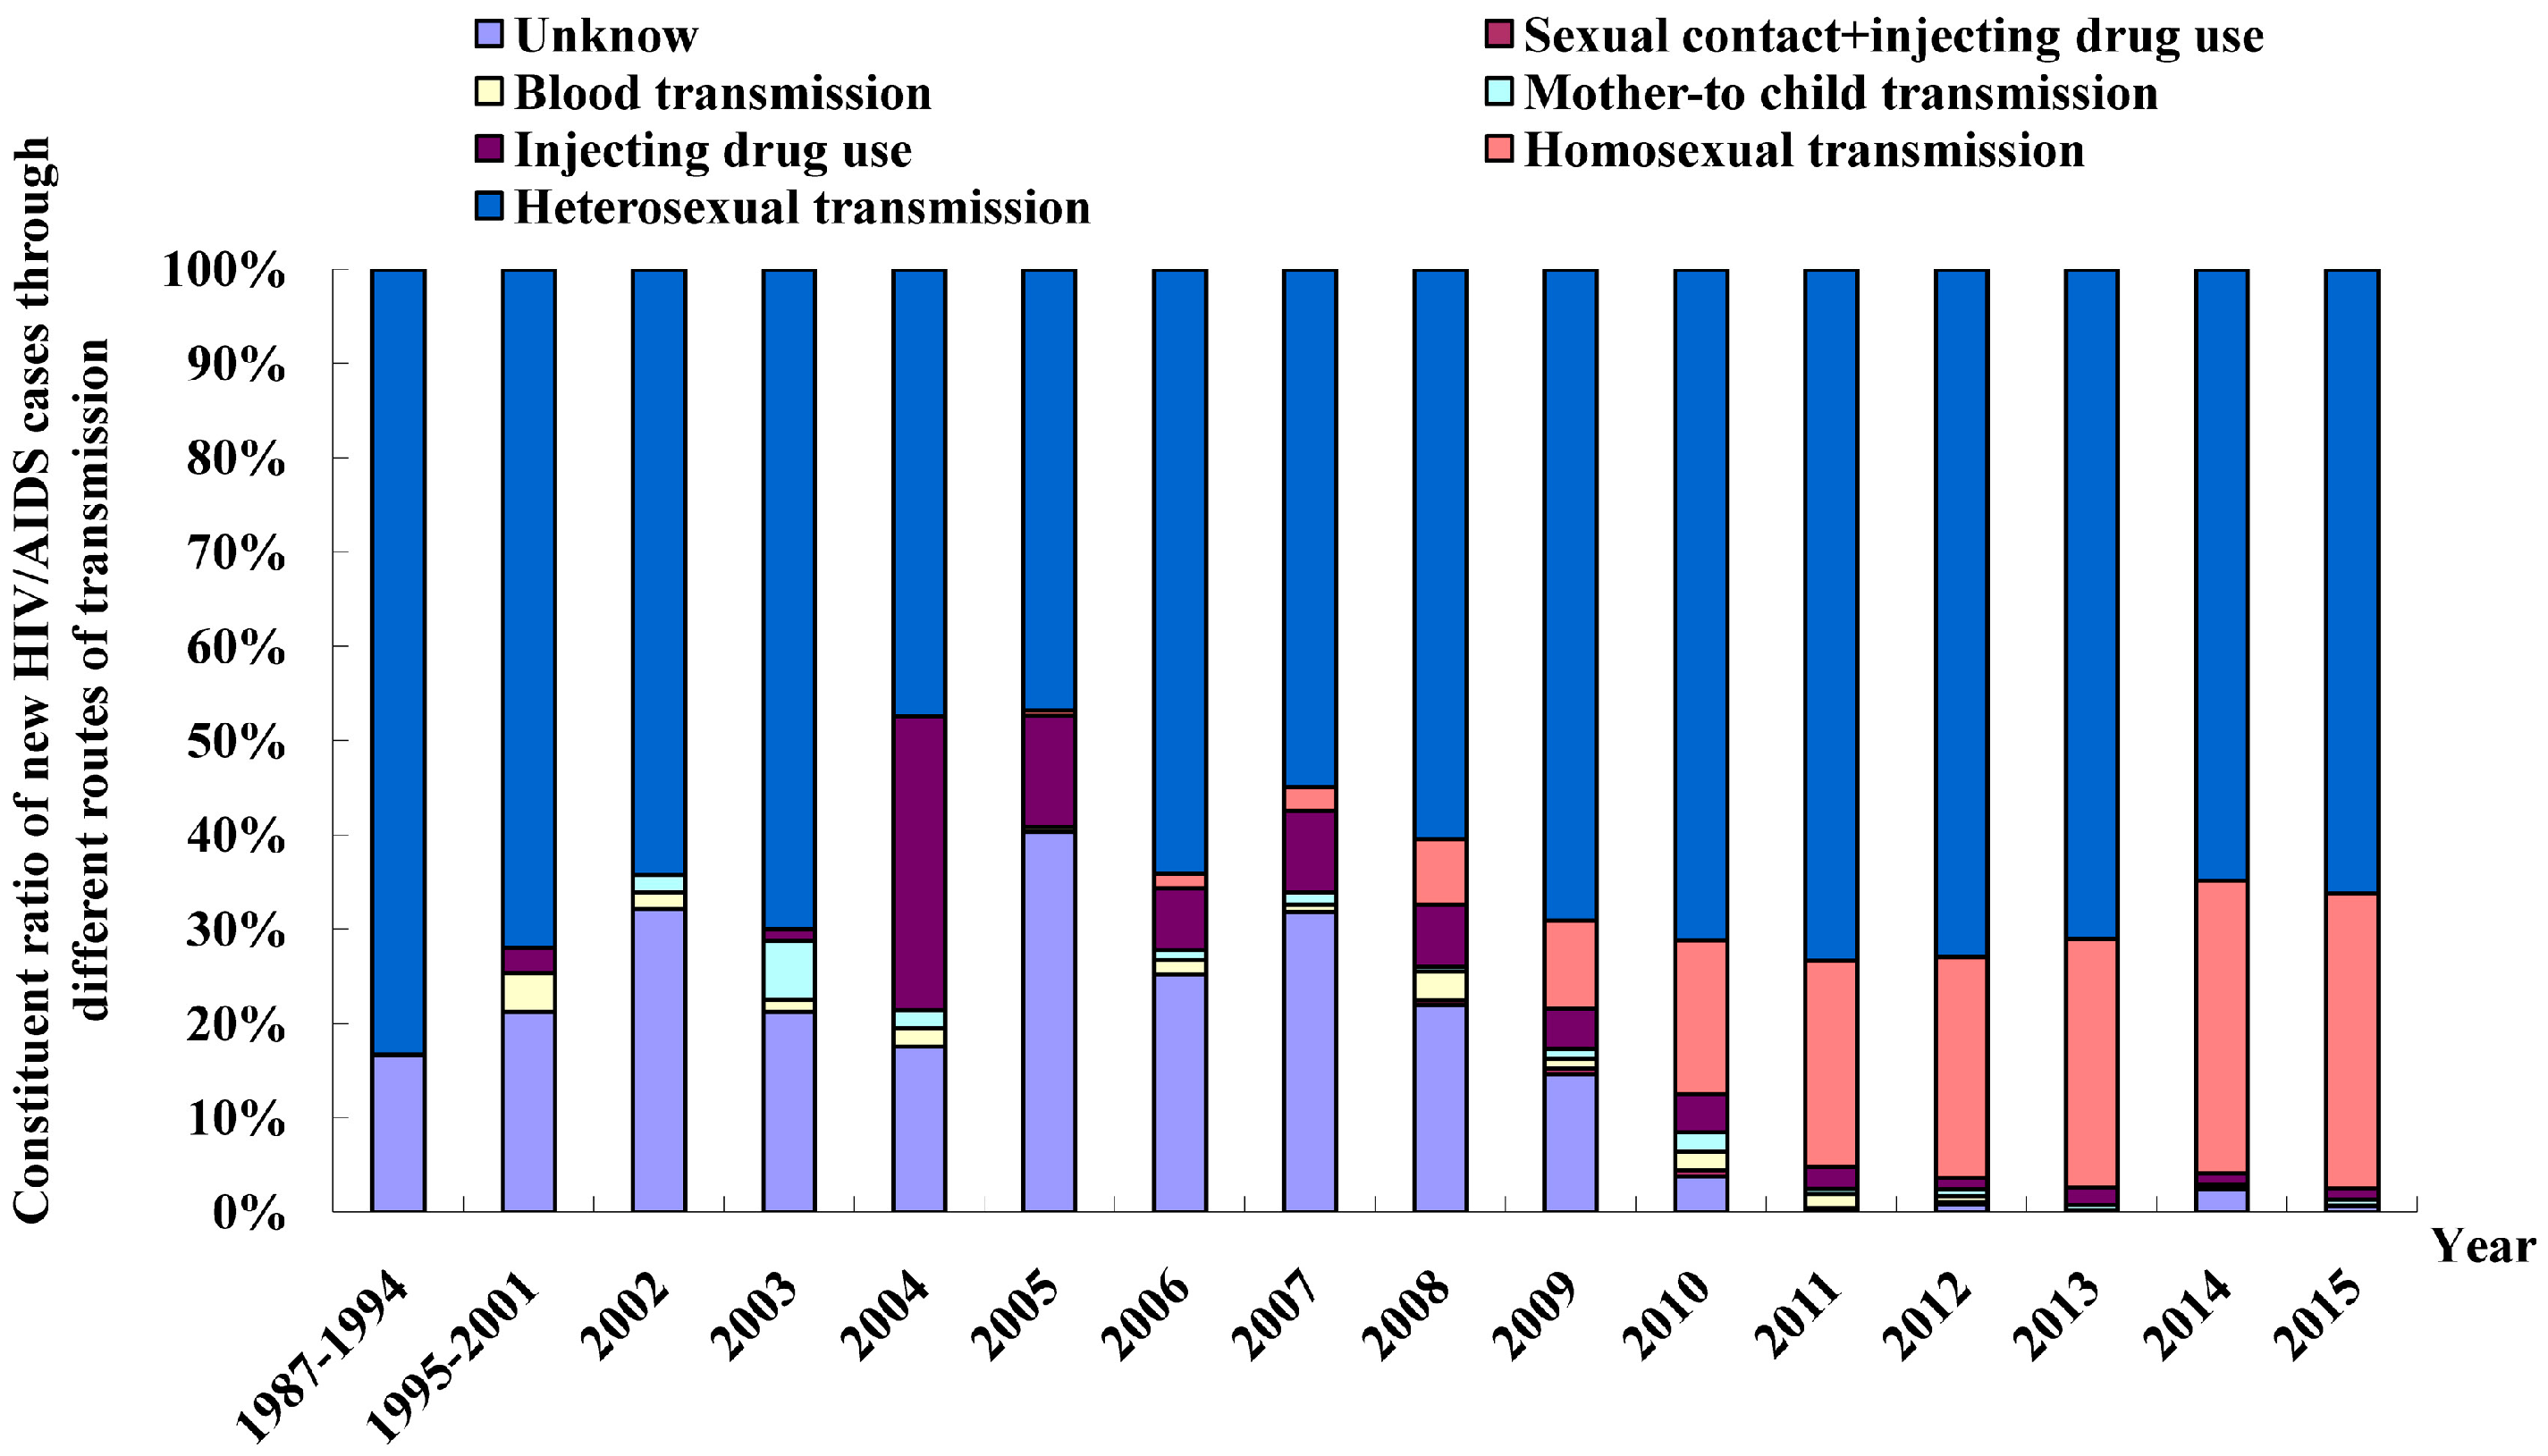 hiv transmission in africa through homosexual